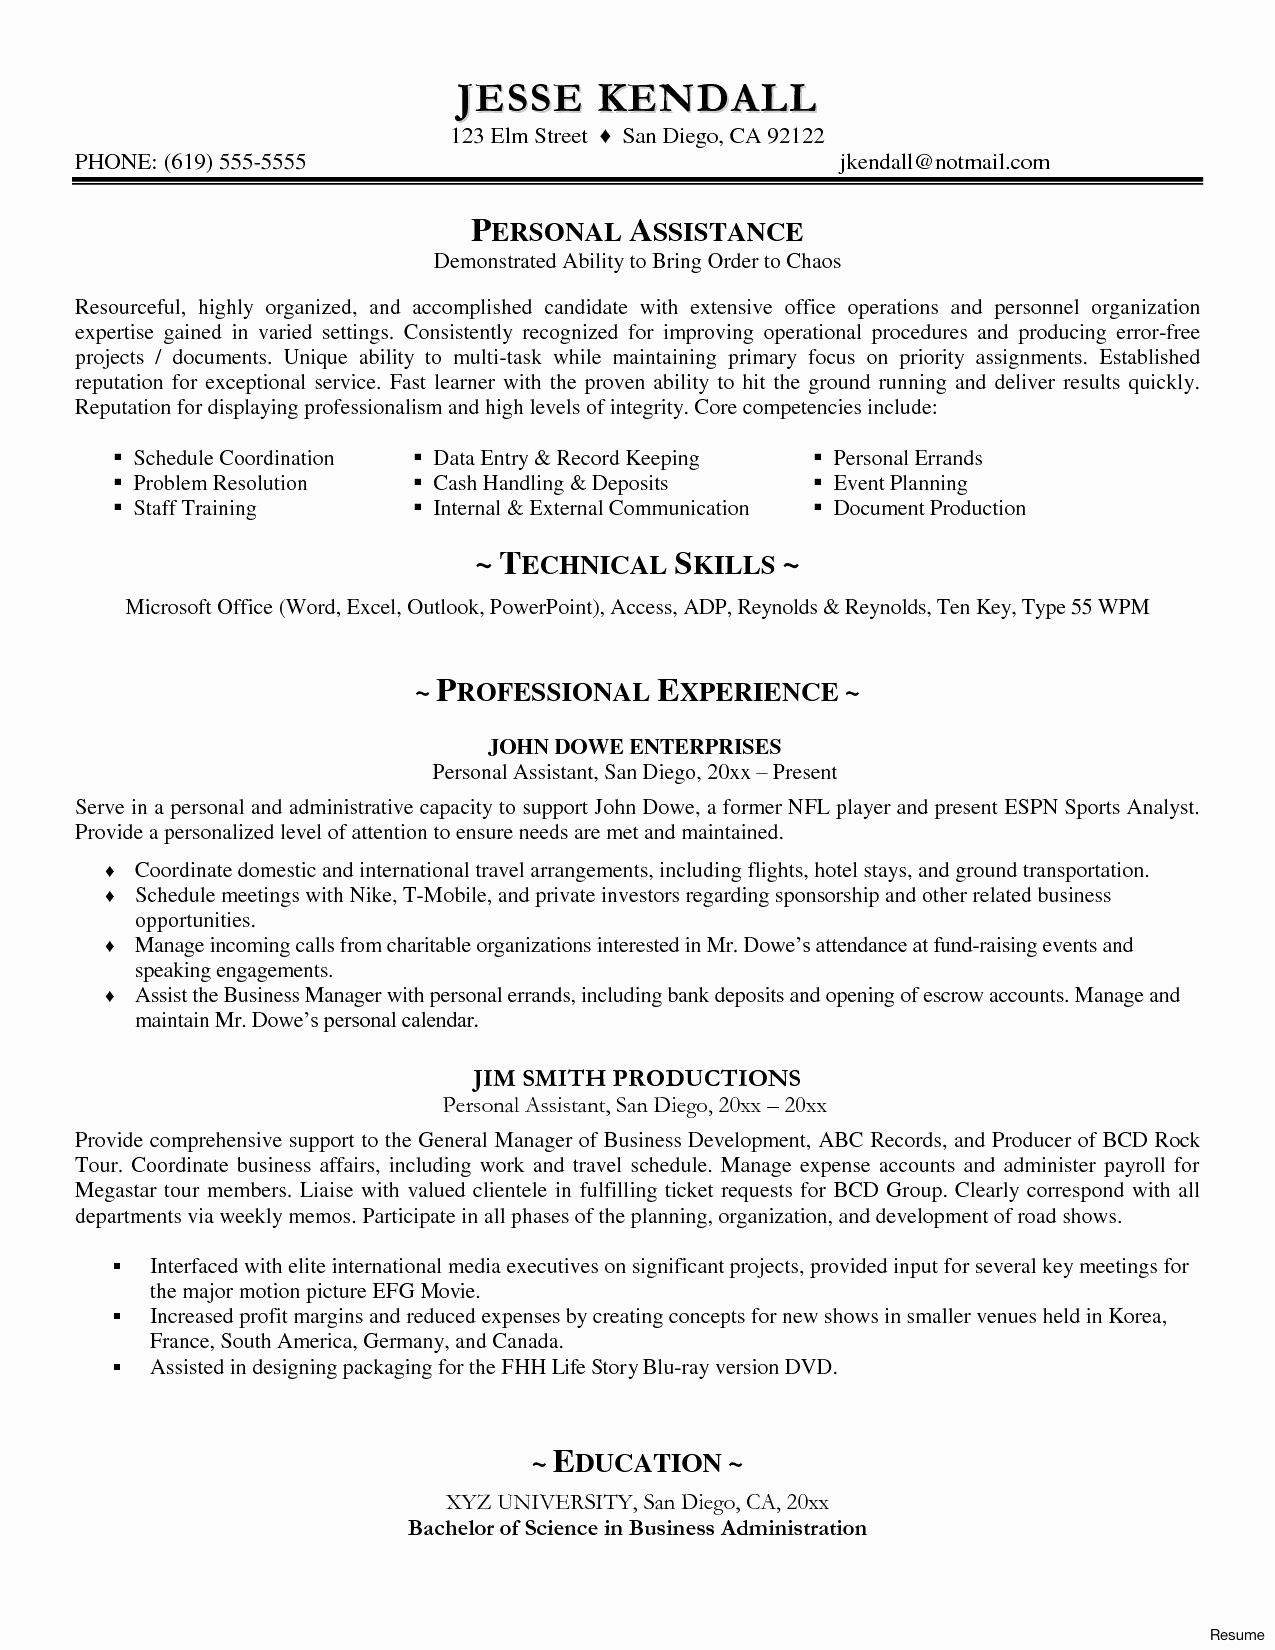 Free Resume Cover Letter Template Download - Free Cover Letter Template Download Awesome Free Microsoft Resume